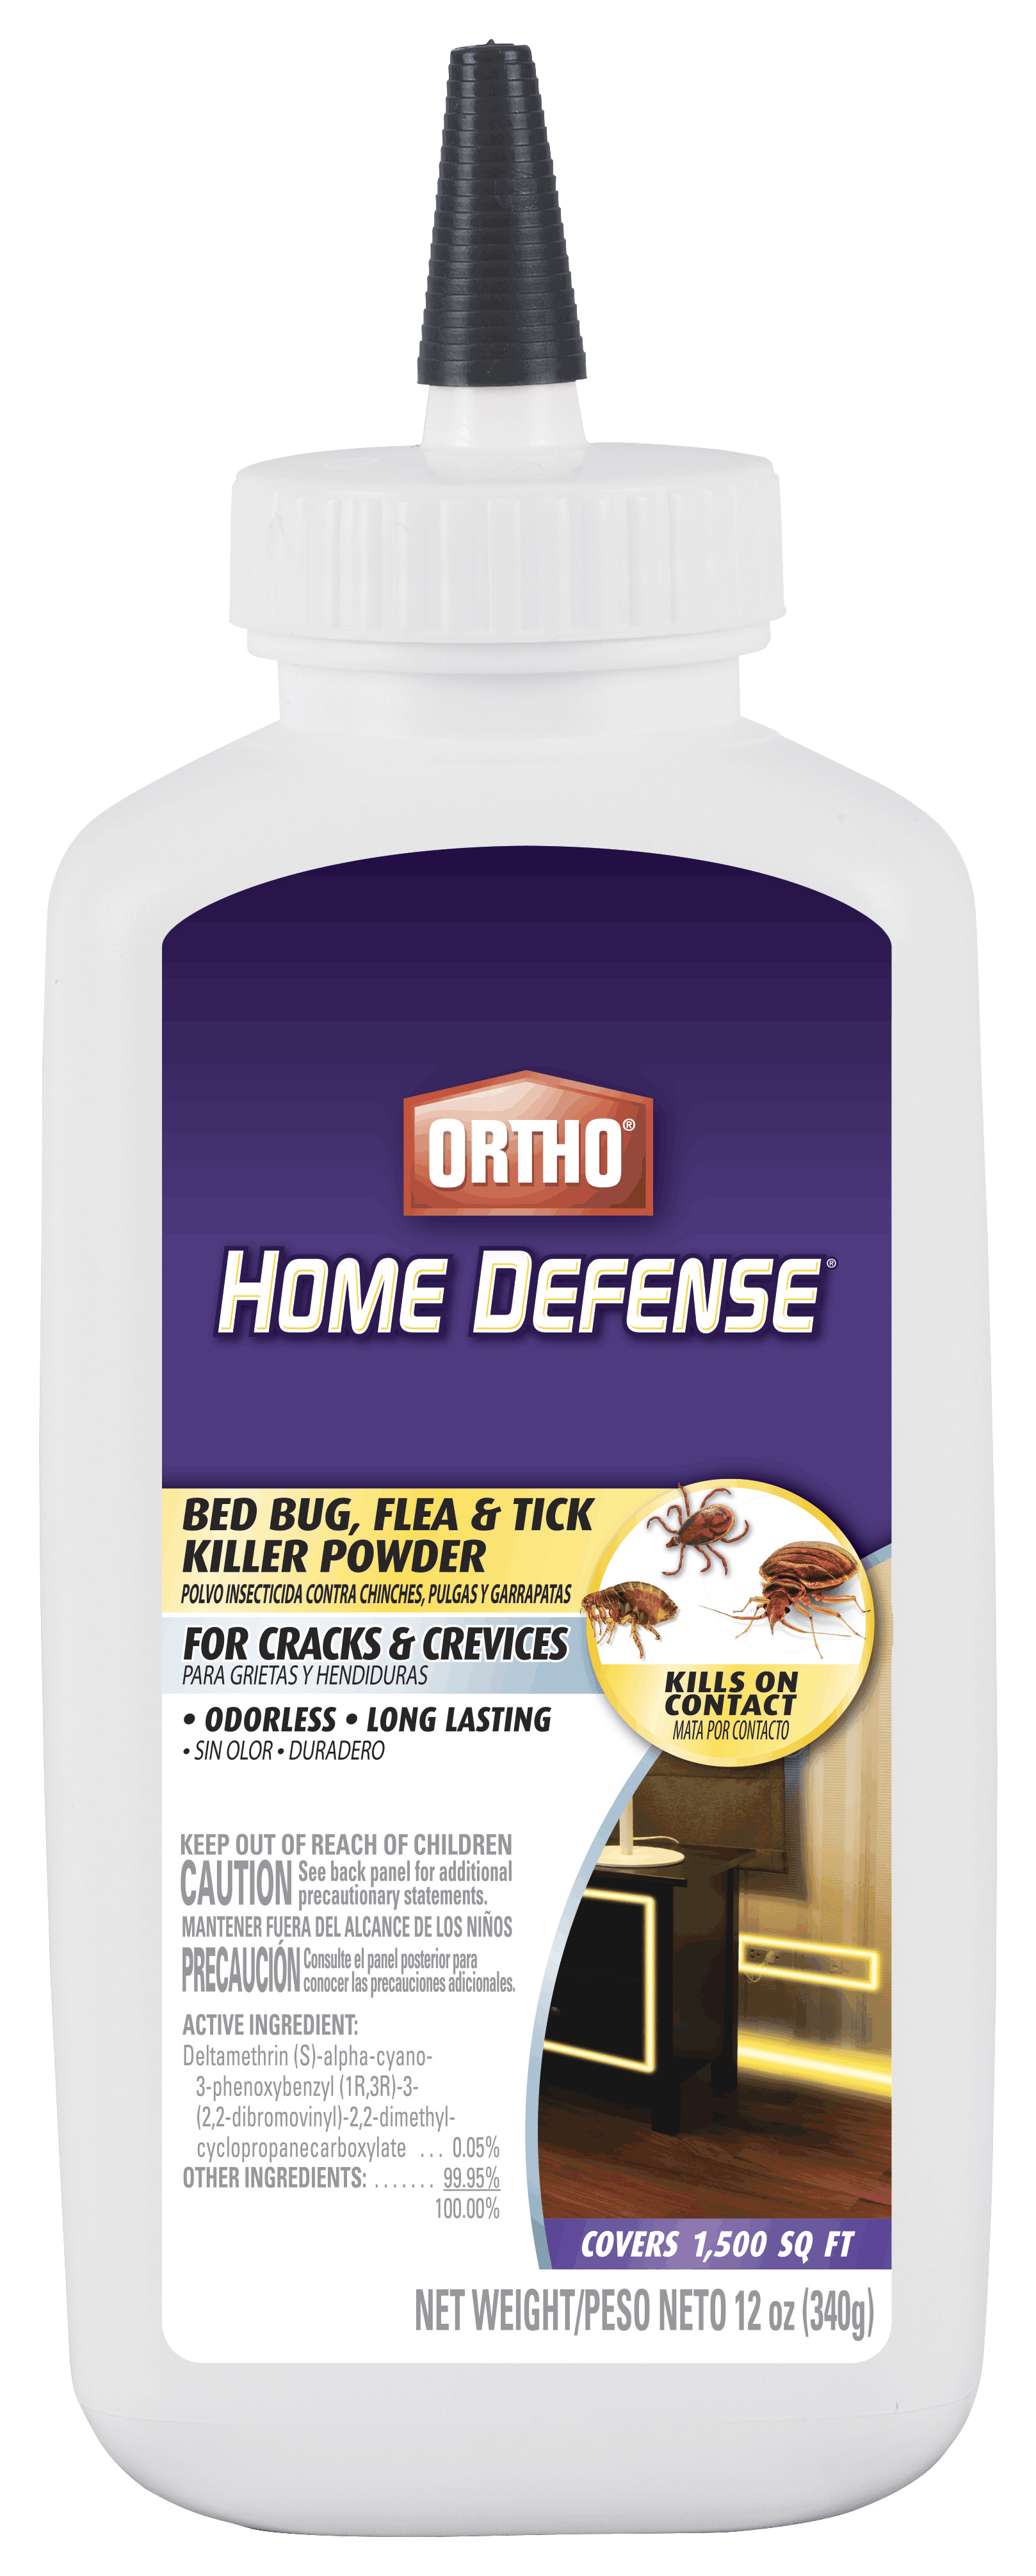 Ortho Home Defense Bed Bug Flea Tick Killer Powder Ortho